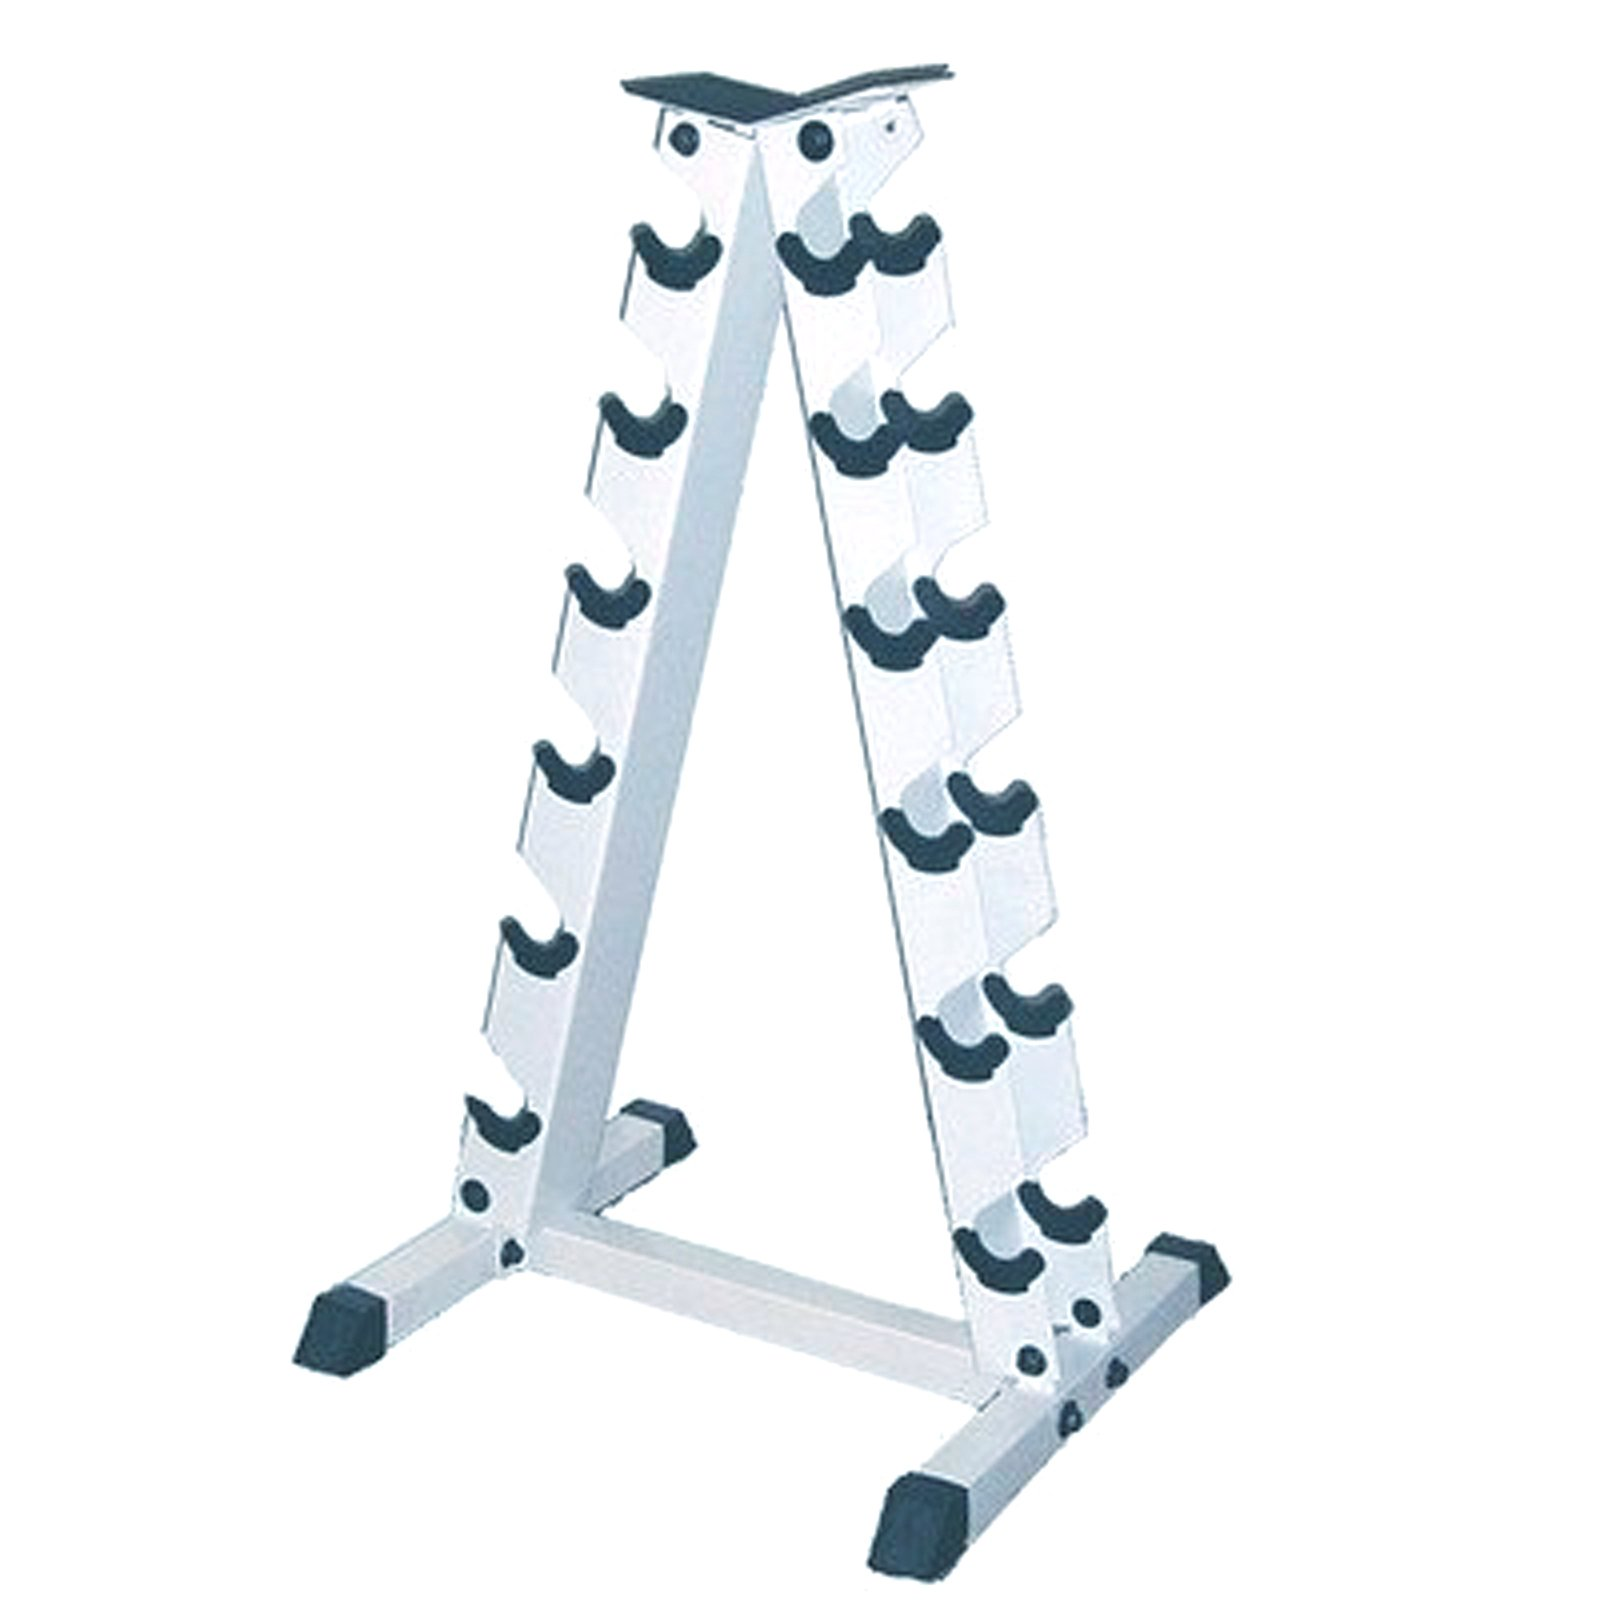 Apollo Athletics A-Frame Dumbbell Rack, Steel Storage Rack Organizer for 6-Pair Dumbells